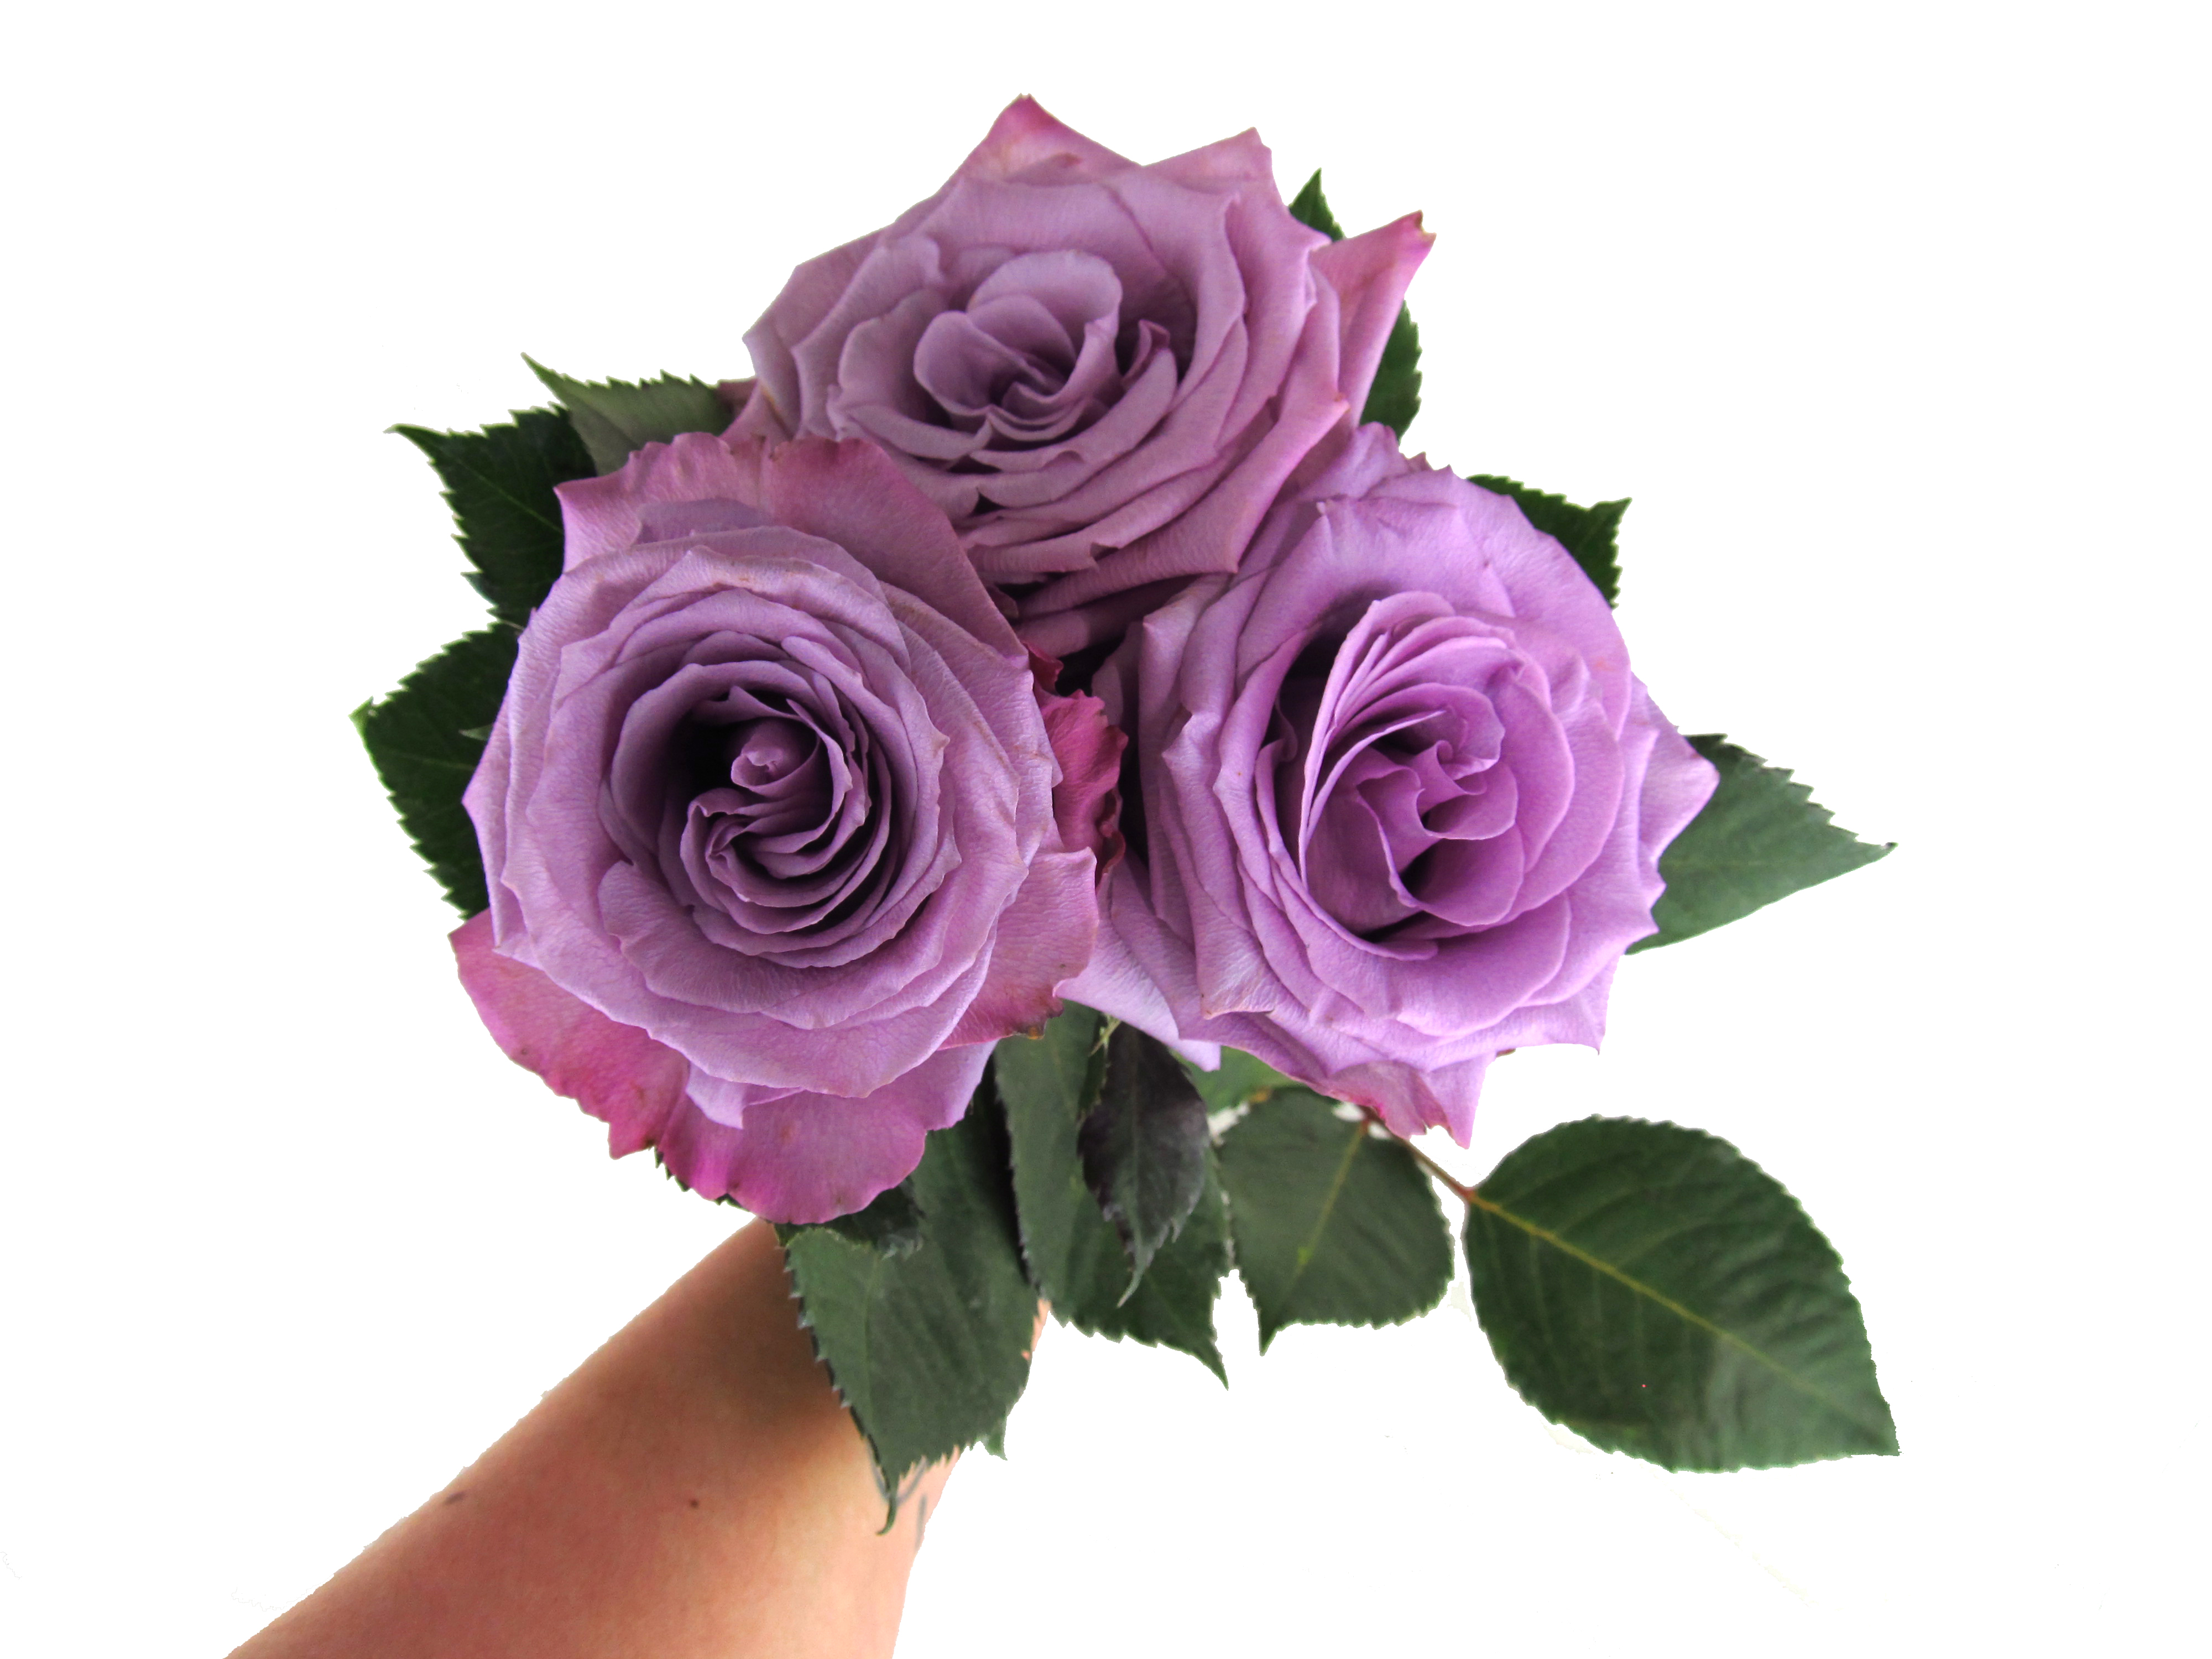 Rose Blue Applause - Standard Rose - Roses - Flowers by category ...